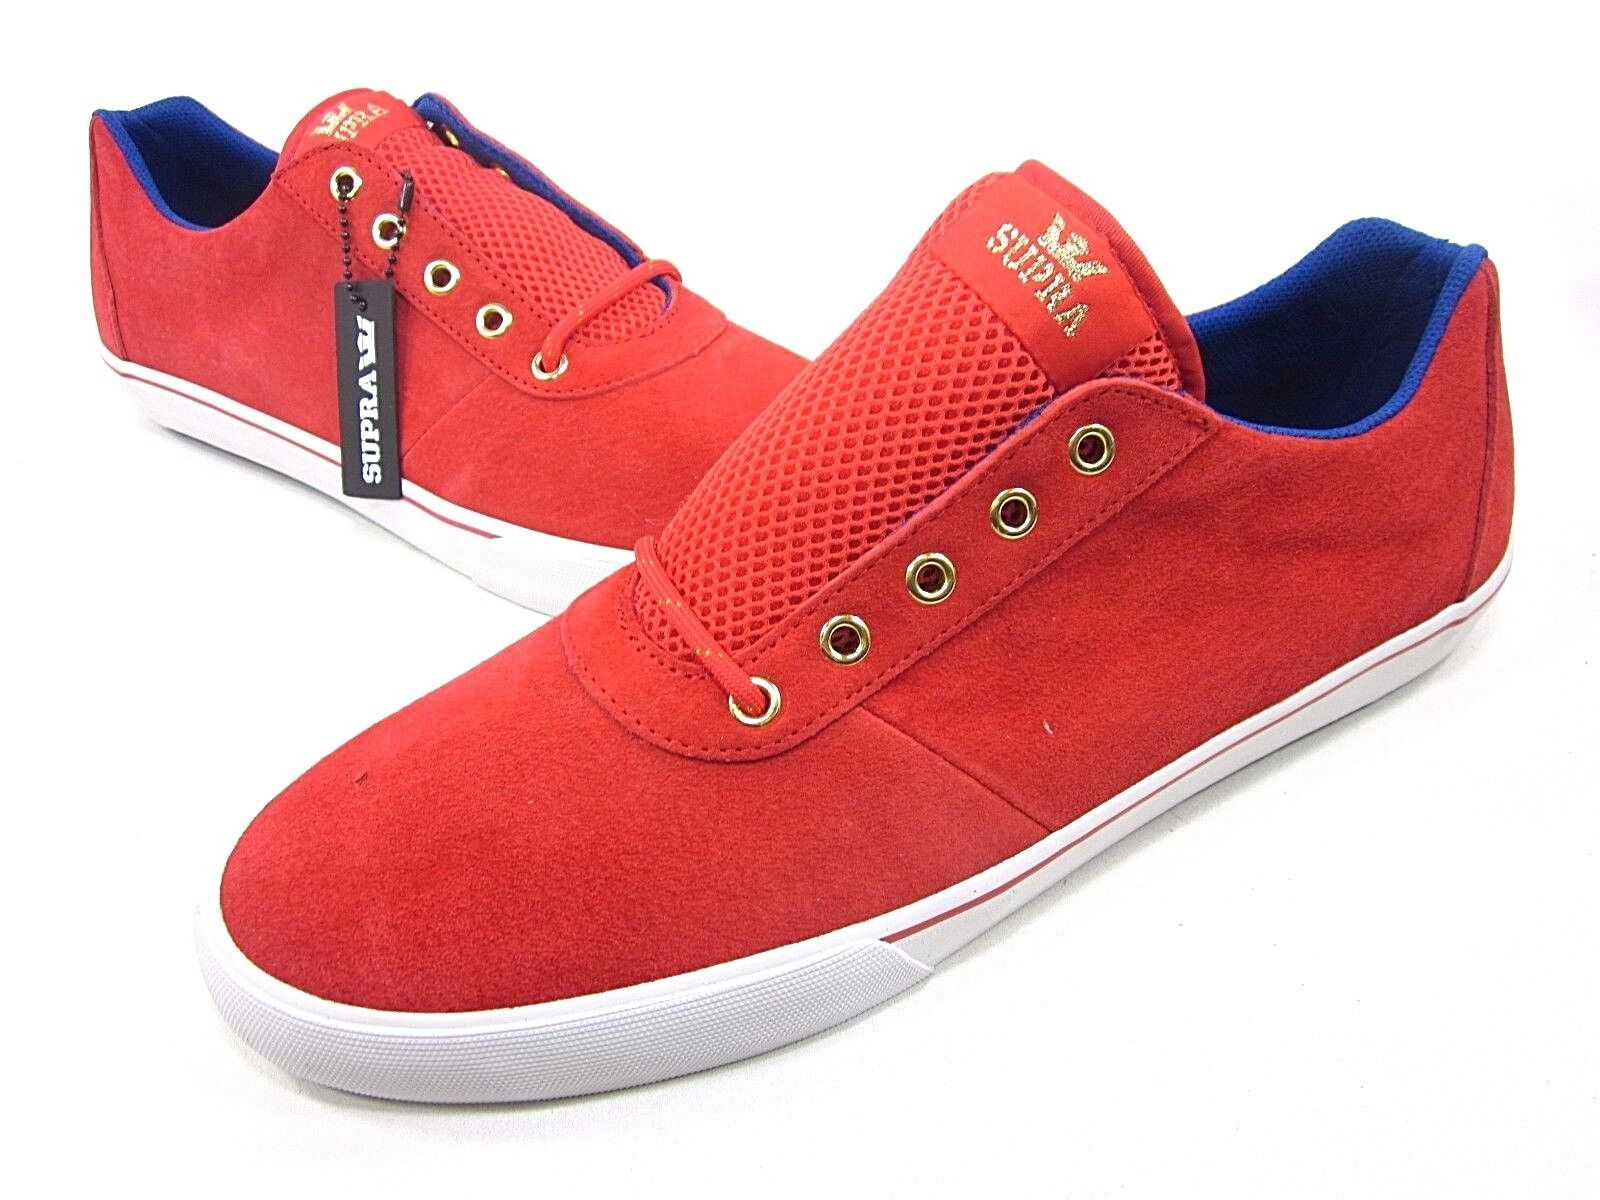 SUPRA, THE 2012 LONDON OLYMPICS CUTTLER LOW, MENS, RED  WHITE  blueE, NEW IN BOX